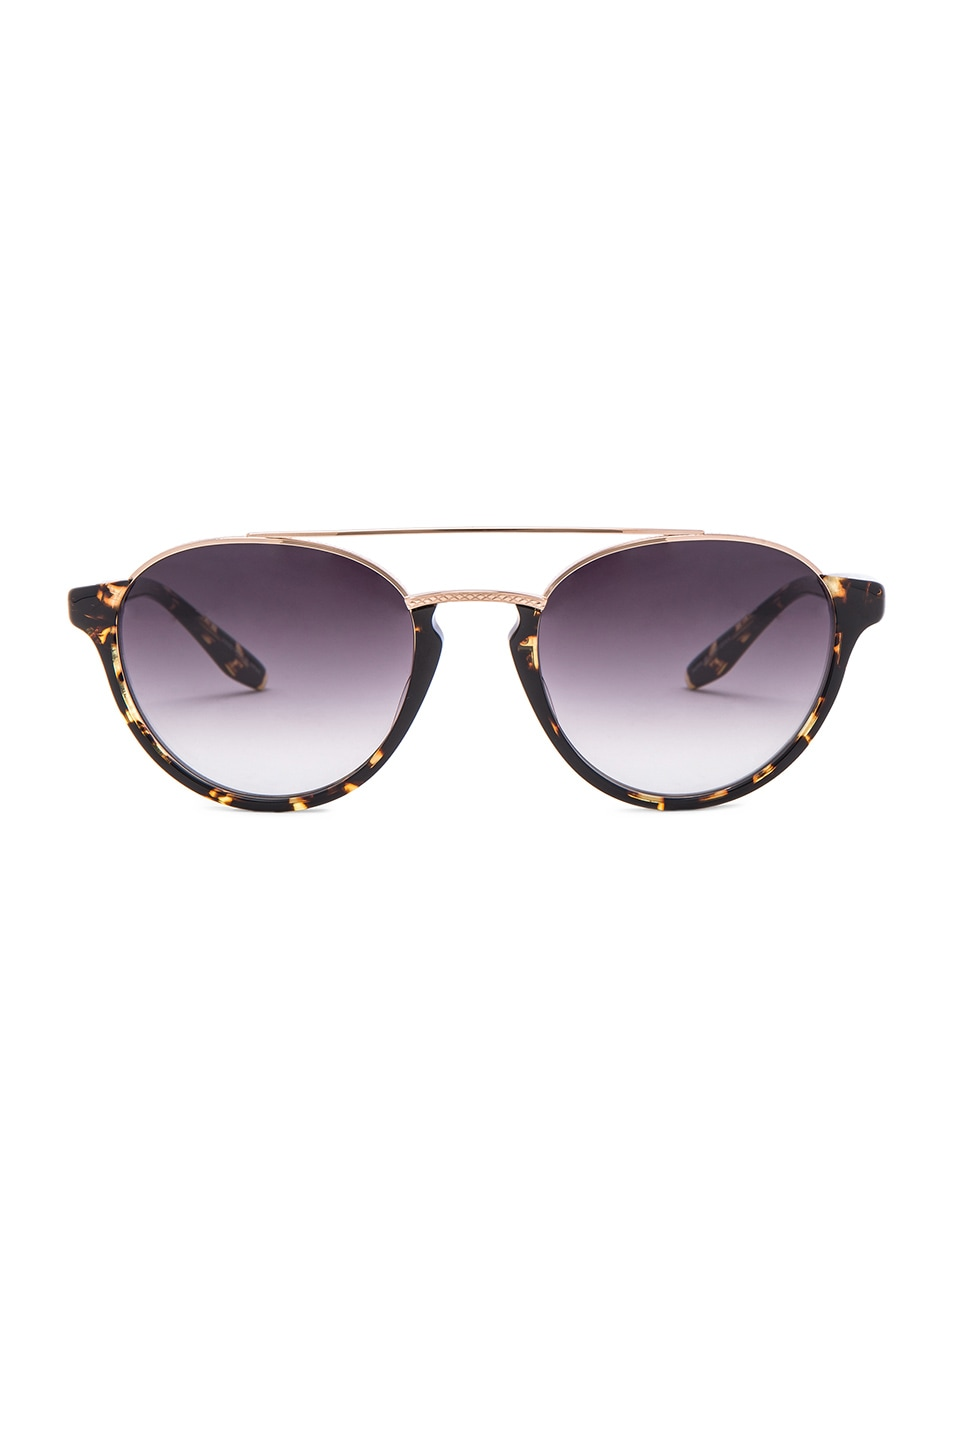 Image 1 of Barton Perreira Boleyn Sunglasses in Heroine Chic